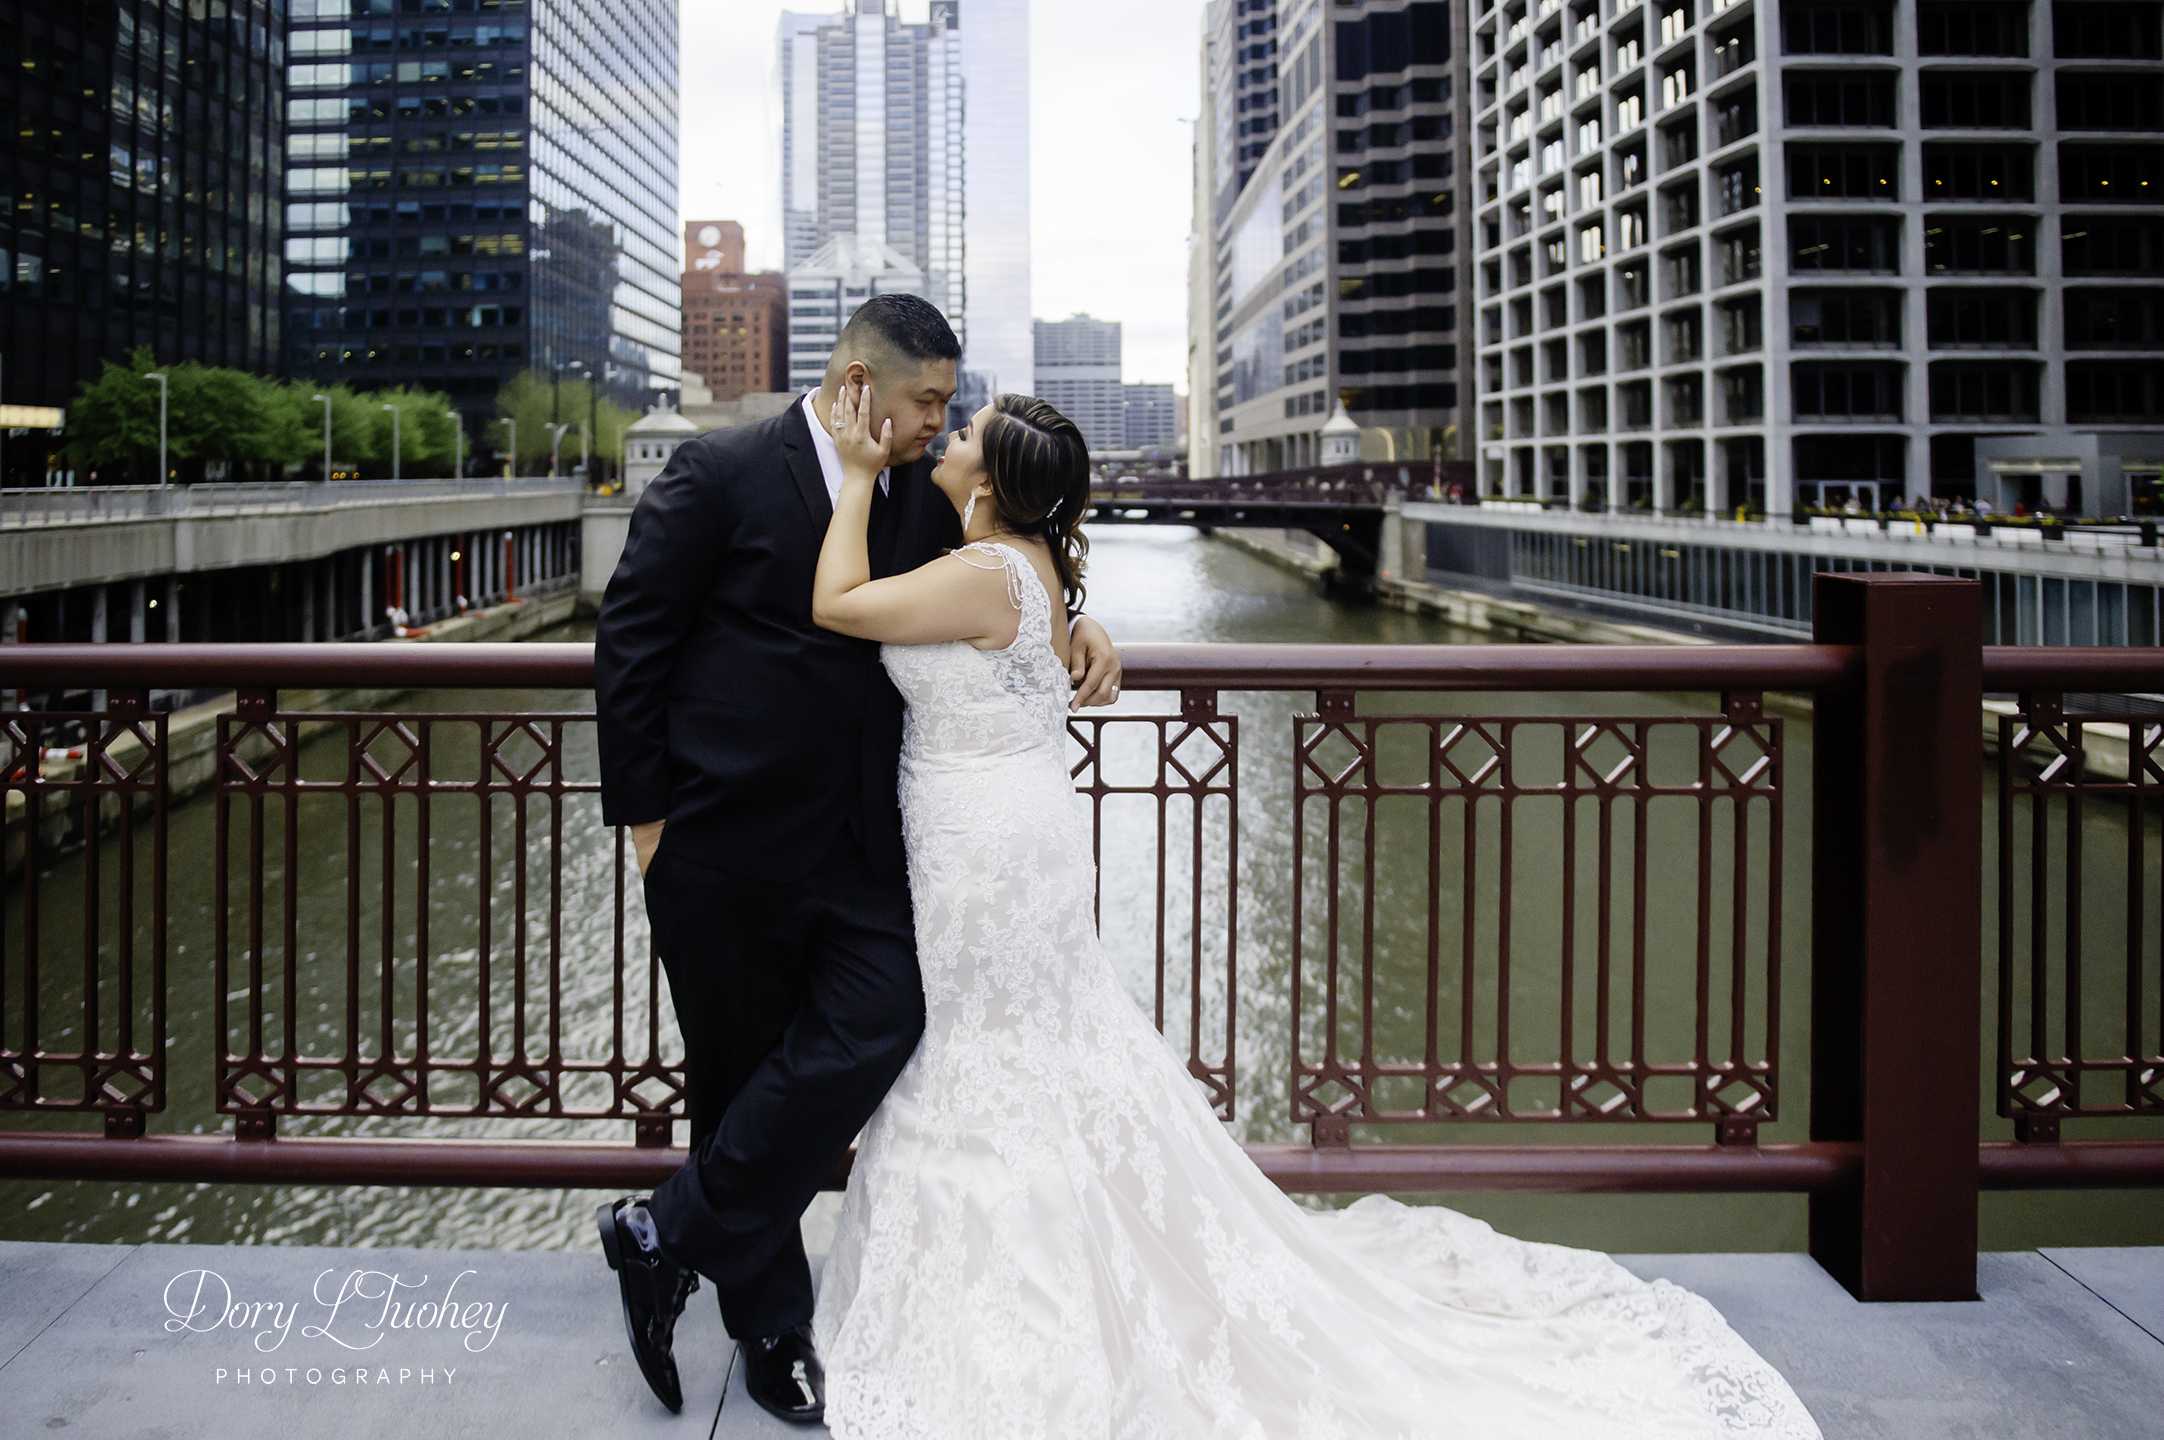 Chicago_wedding_photographer_bride_union_station_laos_thai_dory_07.jpg